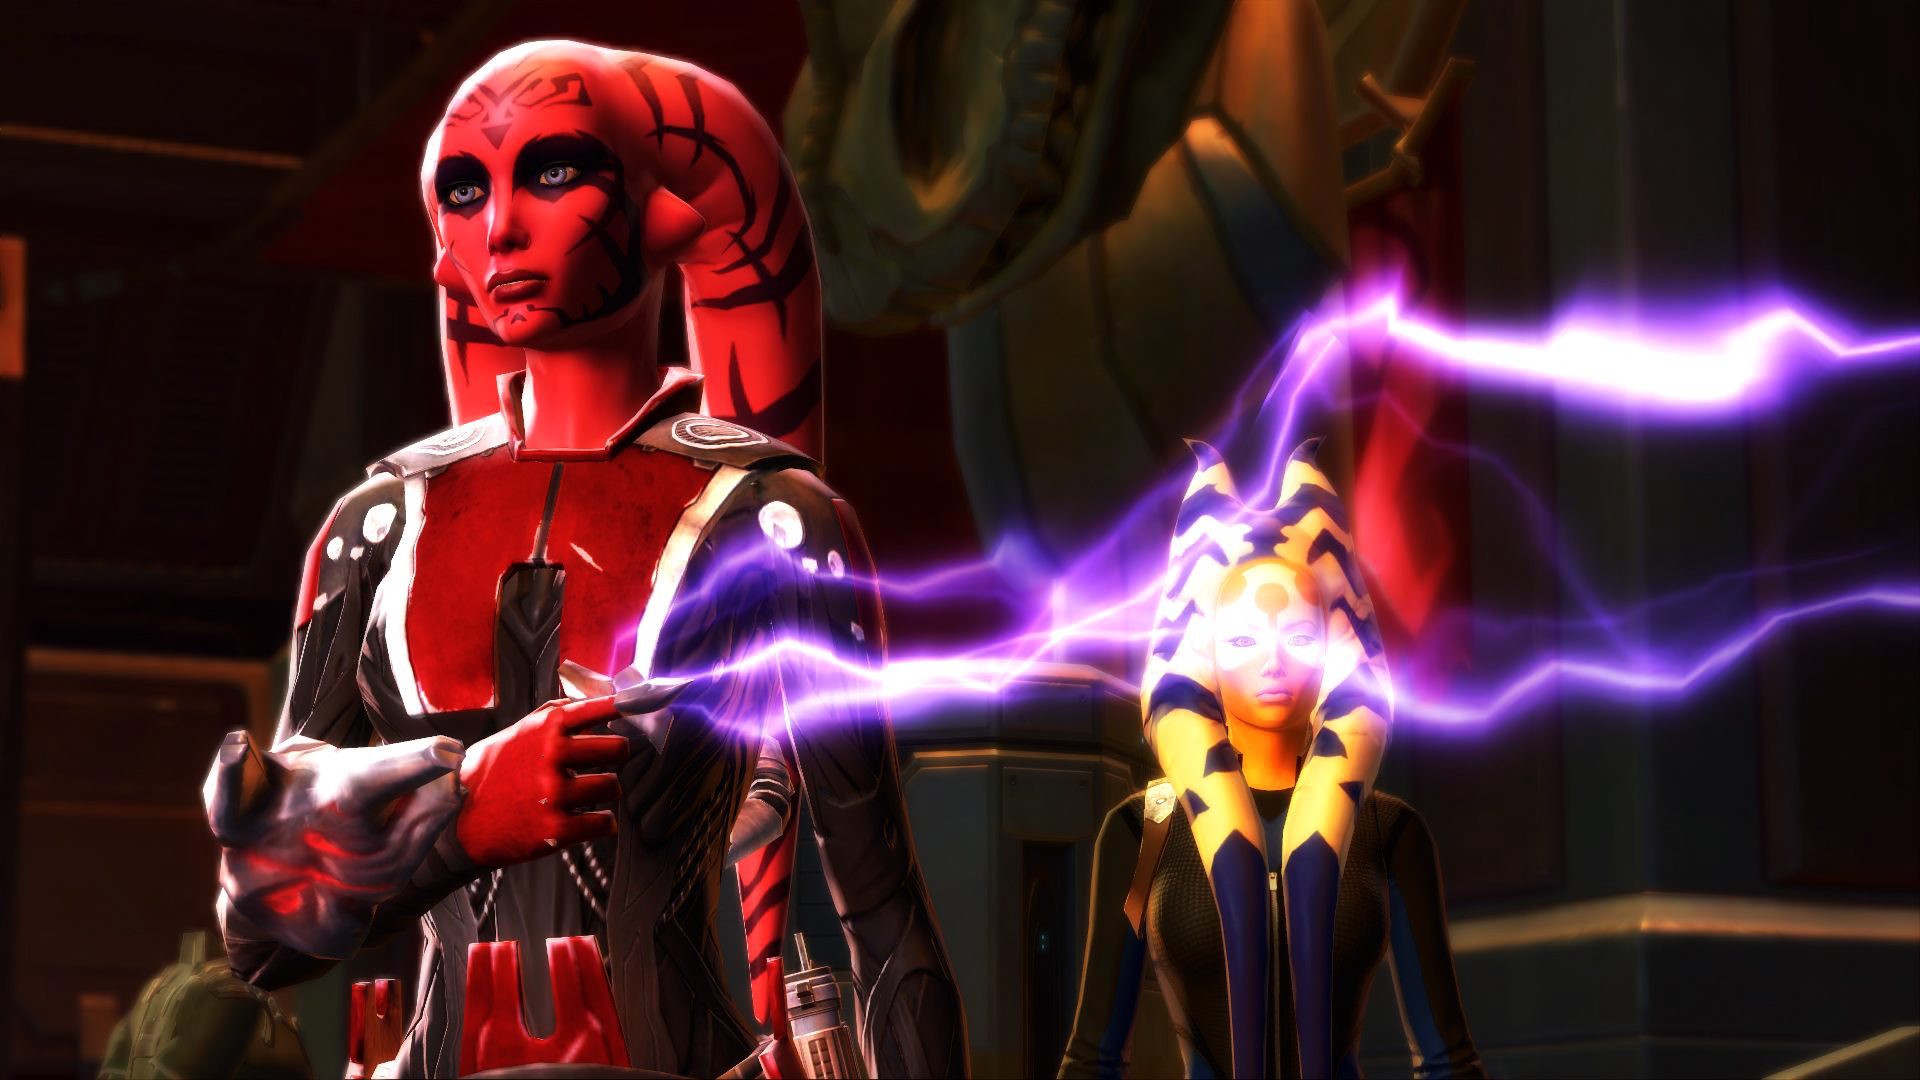 STAR WARS: The Old Republic - Can anyone tell me where to find this?